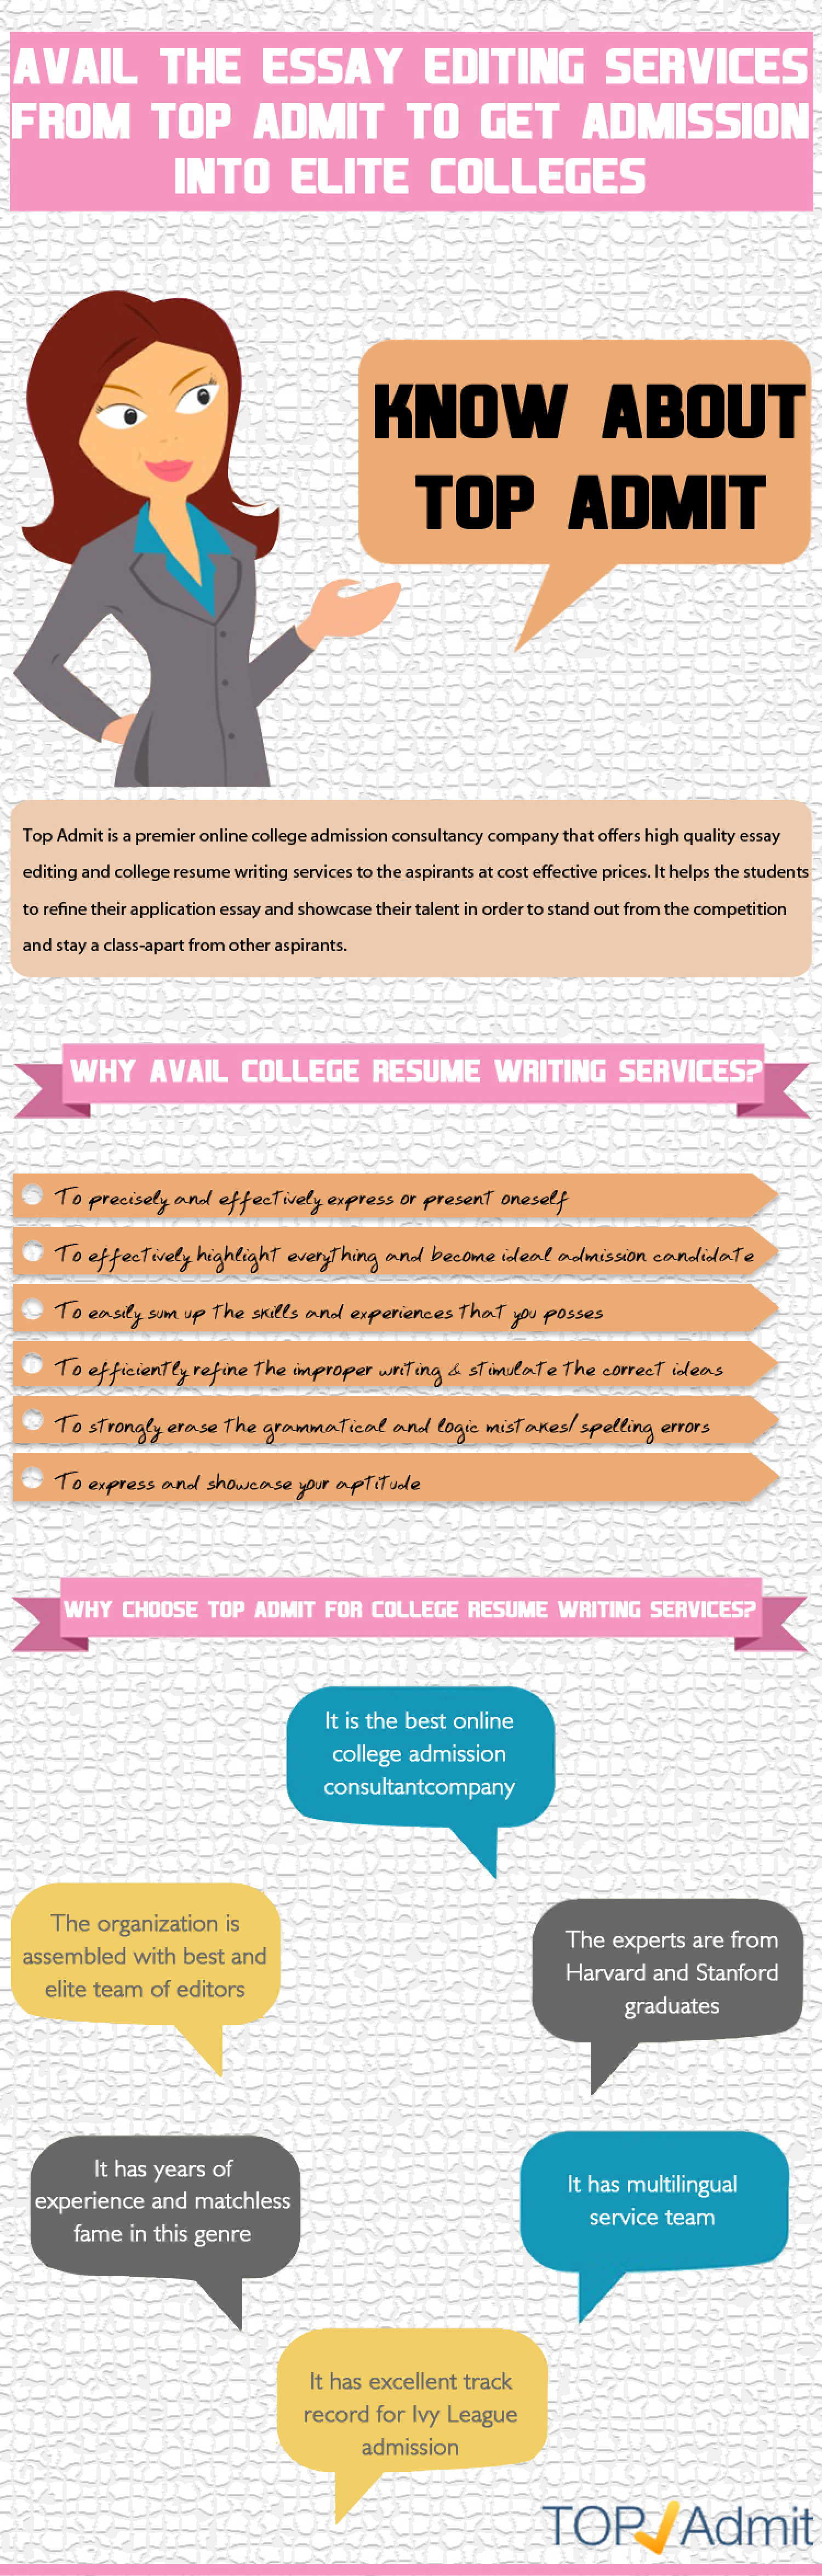 Essay editing service online what is the best admission